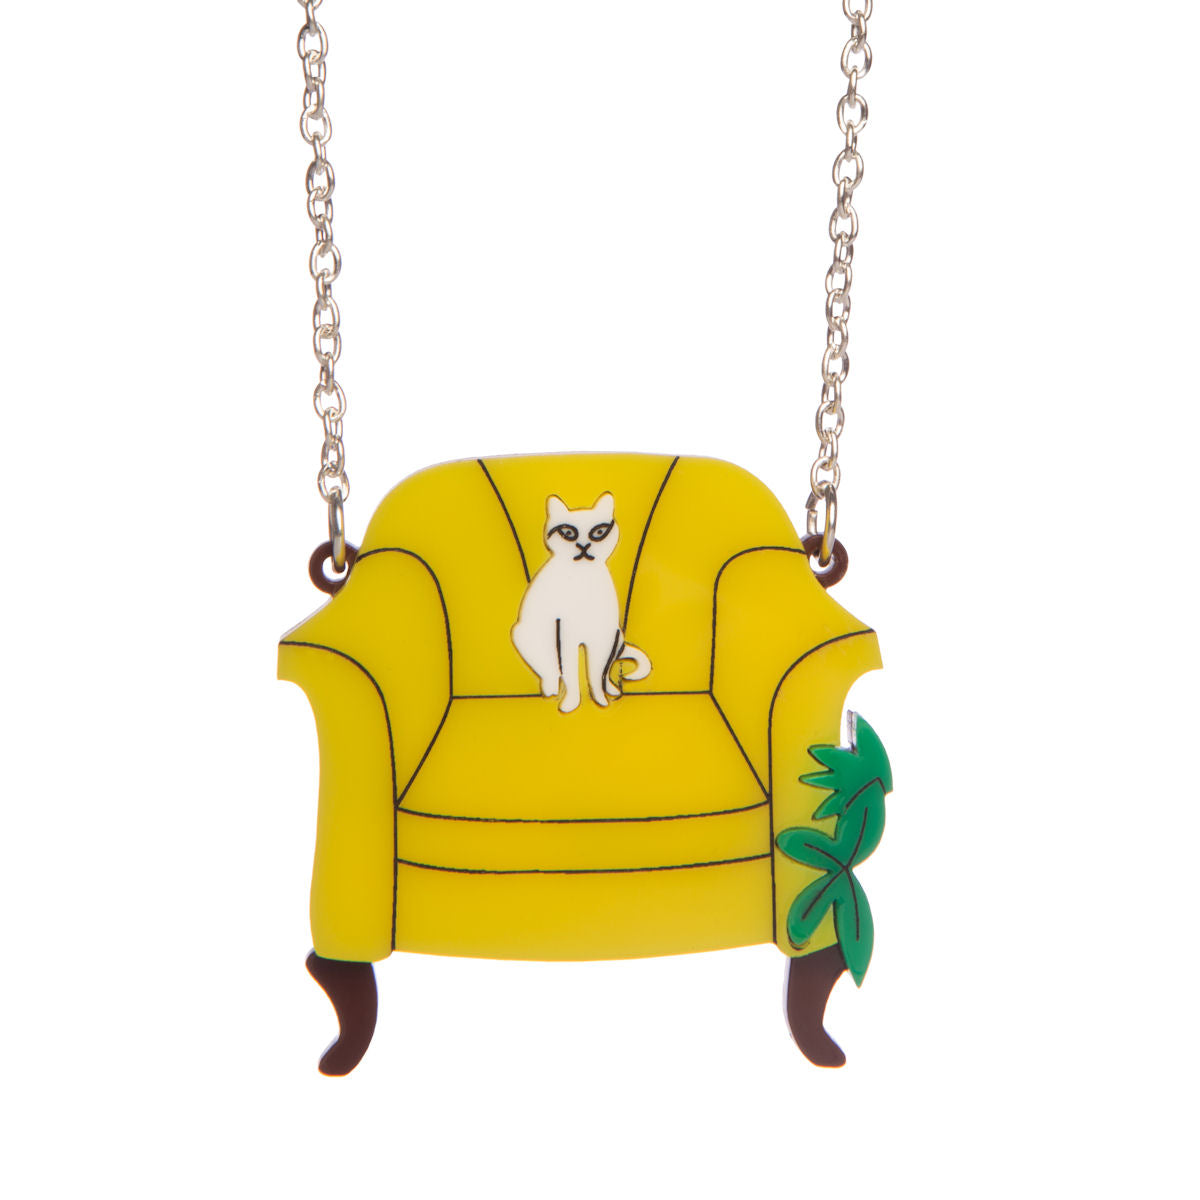 Sugar & Vice x Harriet Lowther Cat On A Chair necklace